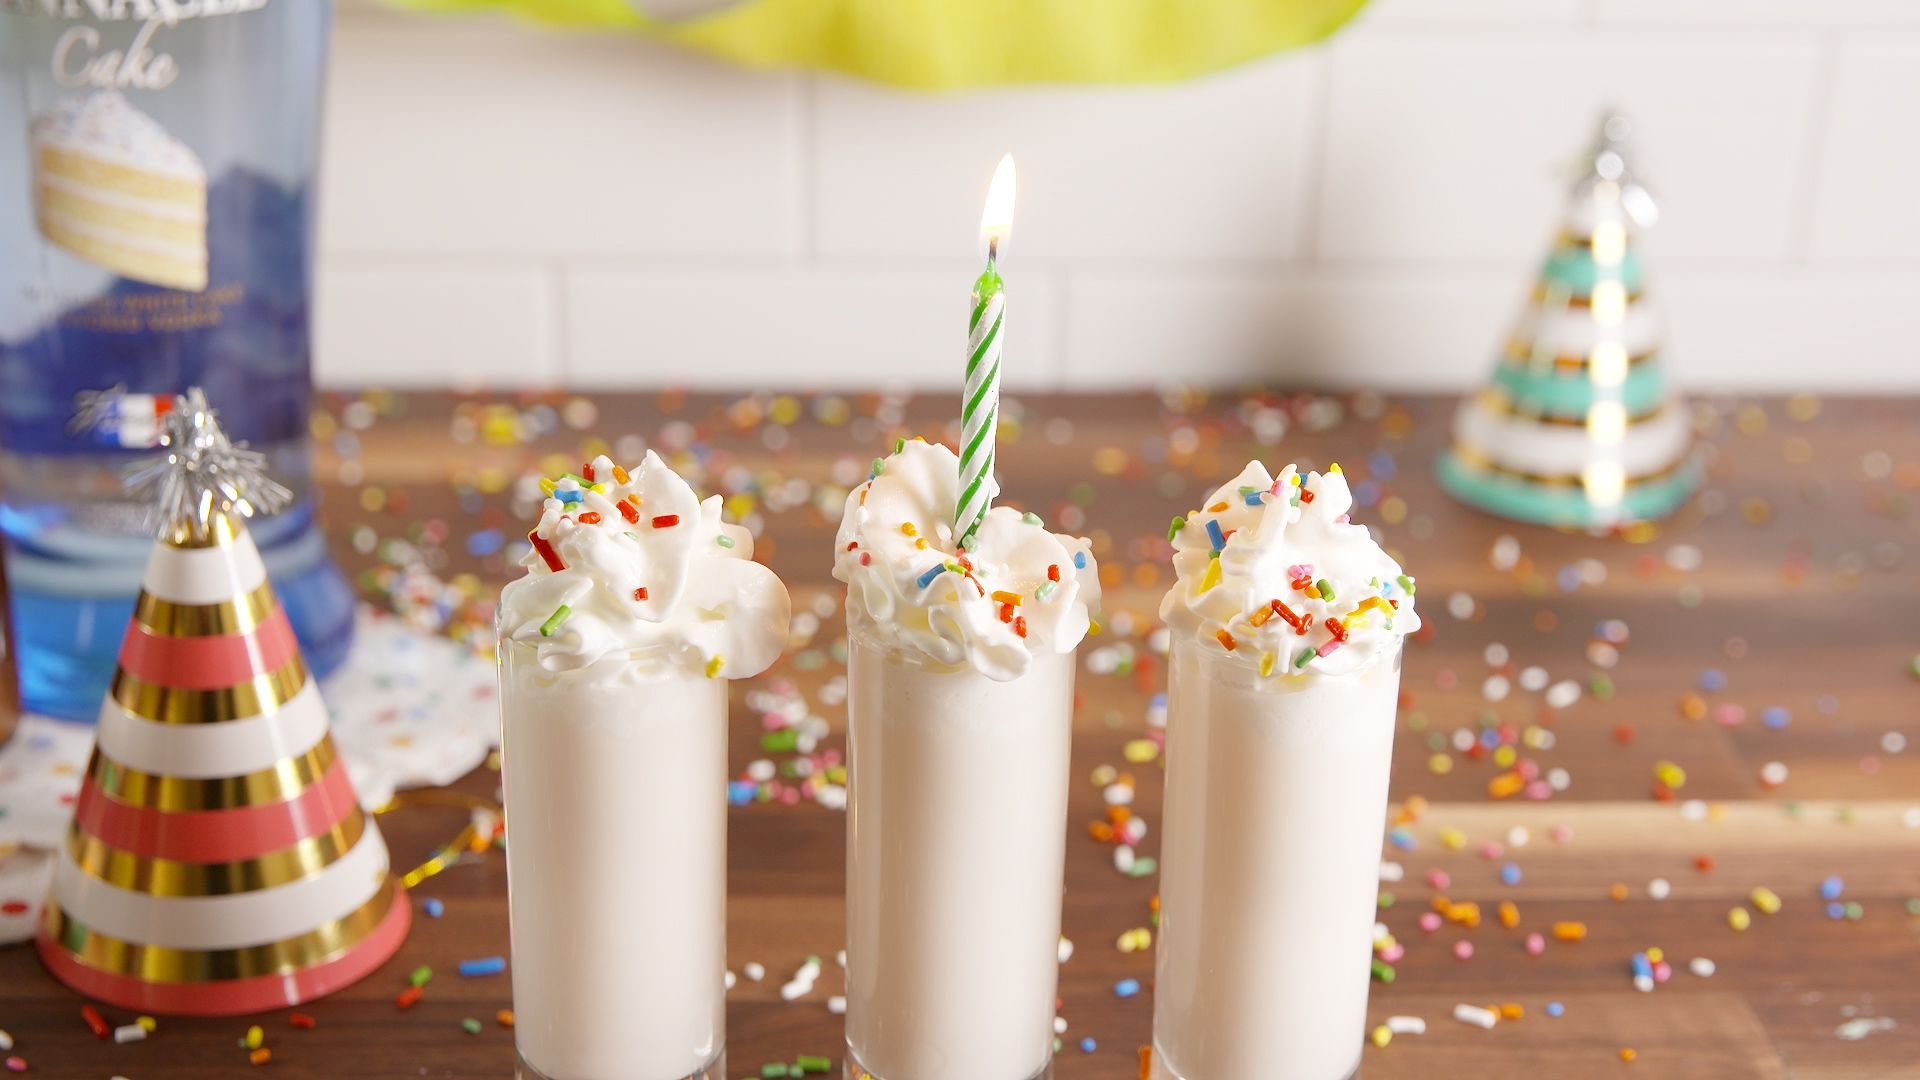 Best Birthday Cake Shots How to Make Birthday Cake Shots